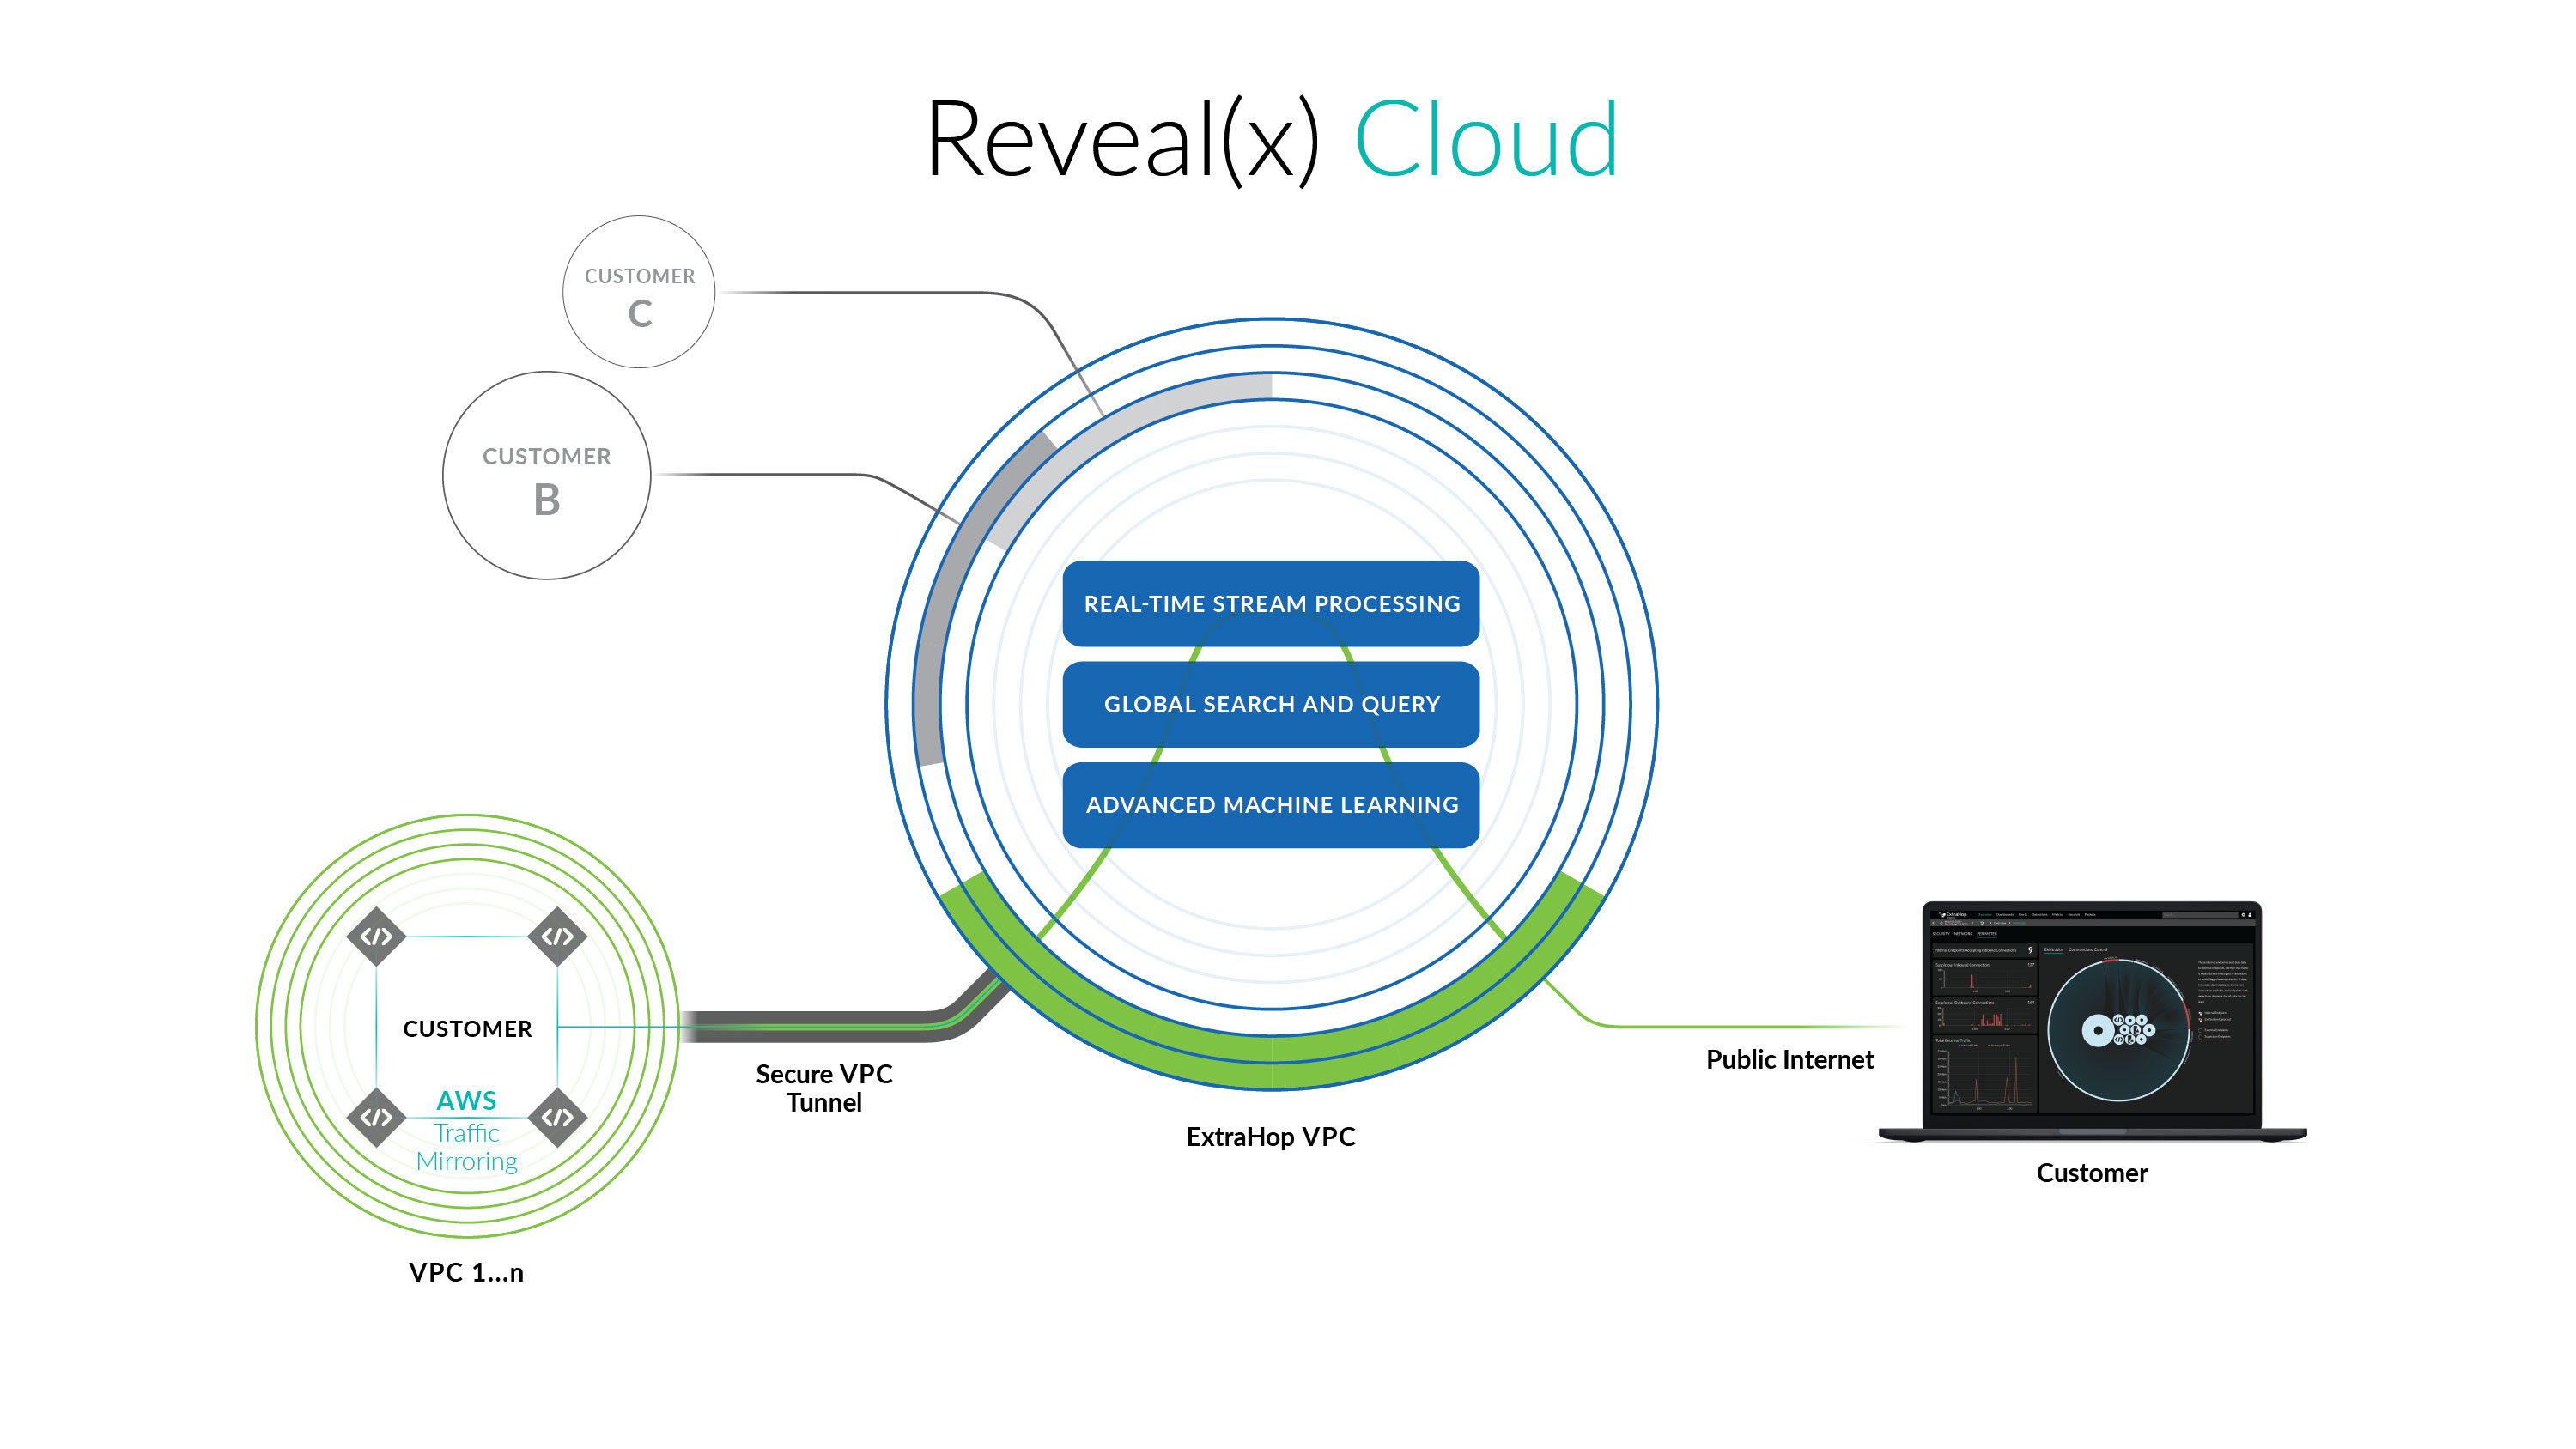 Reveal(x) Cloud Structural Diagram